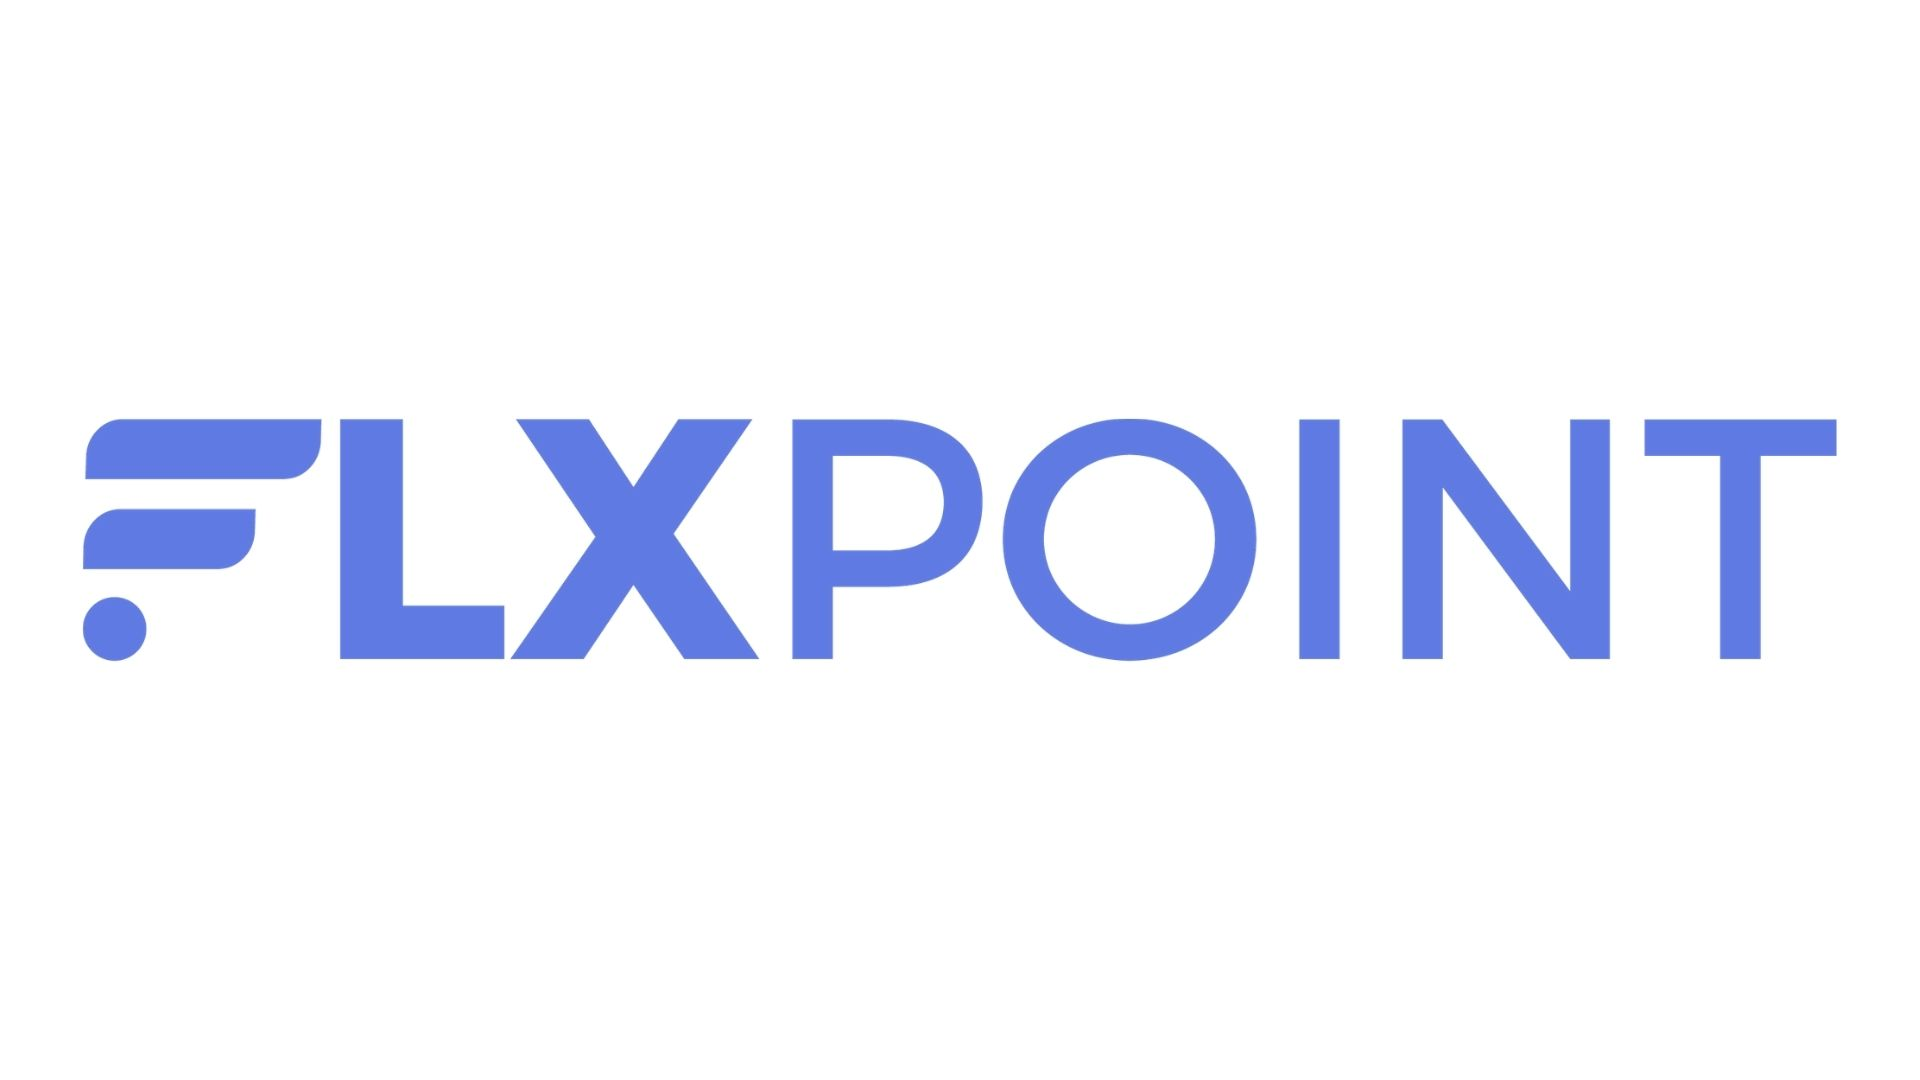 Flxpoint